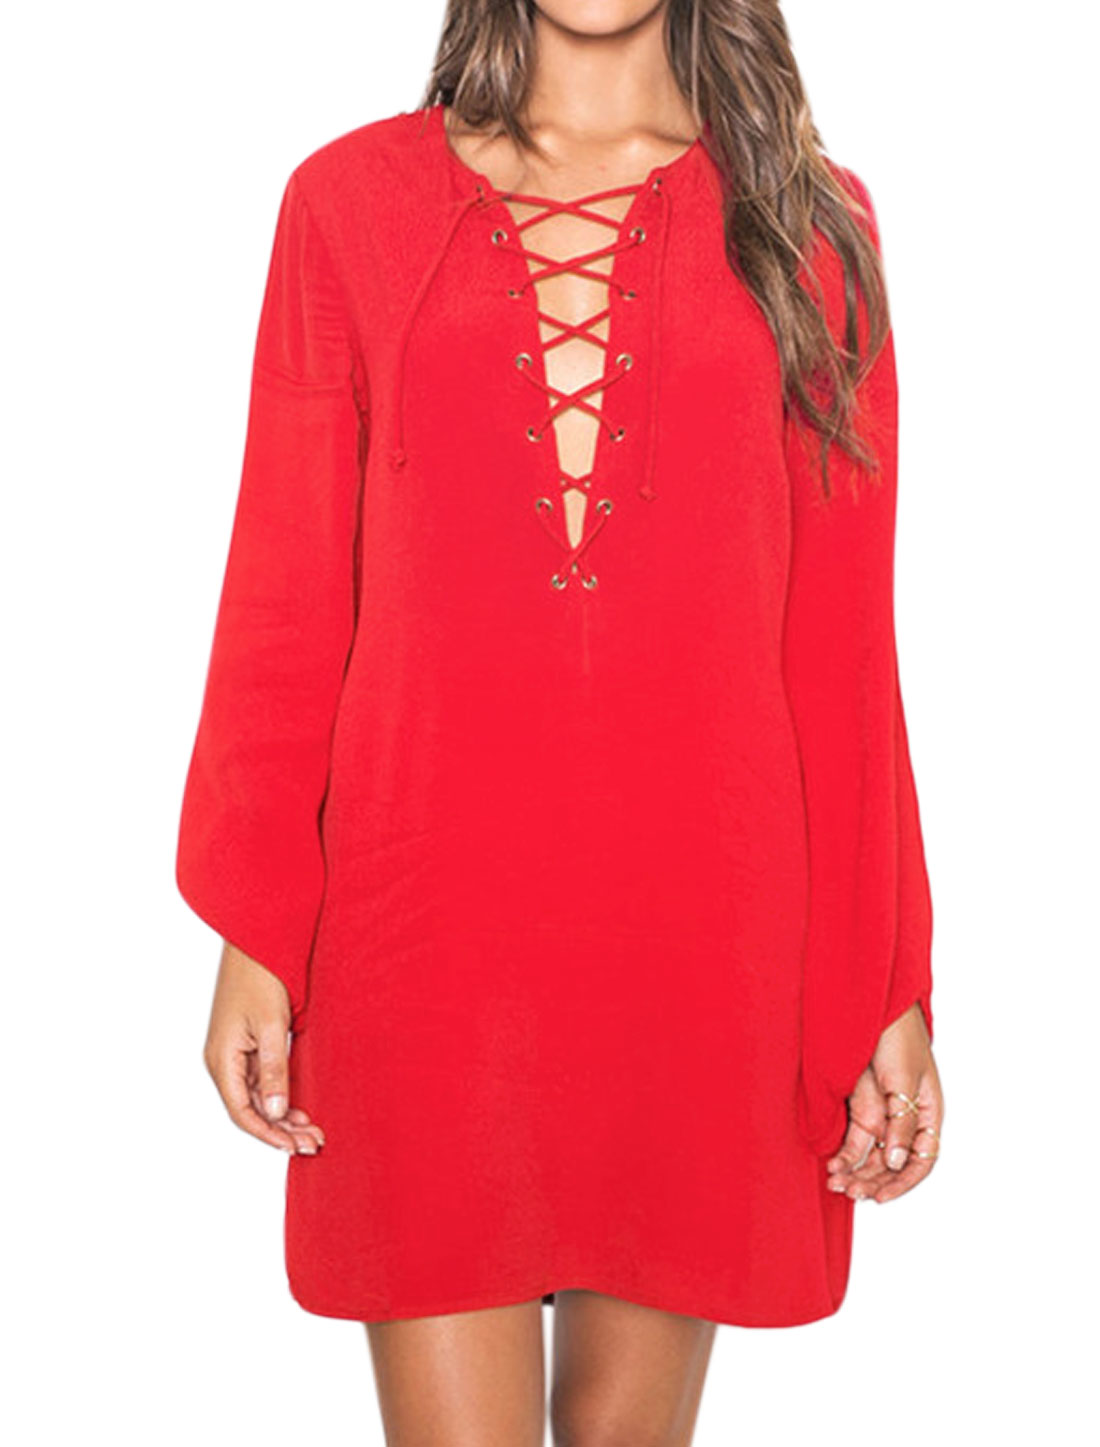 Women Split Neck Long Sleeves Lace Up Front Loose Fit Tunic Dress Red XS